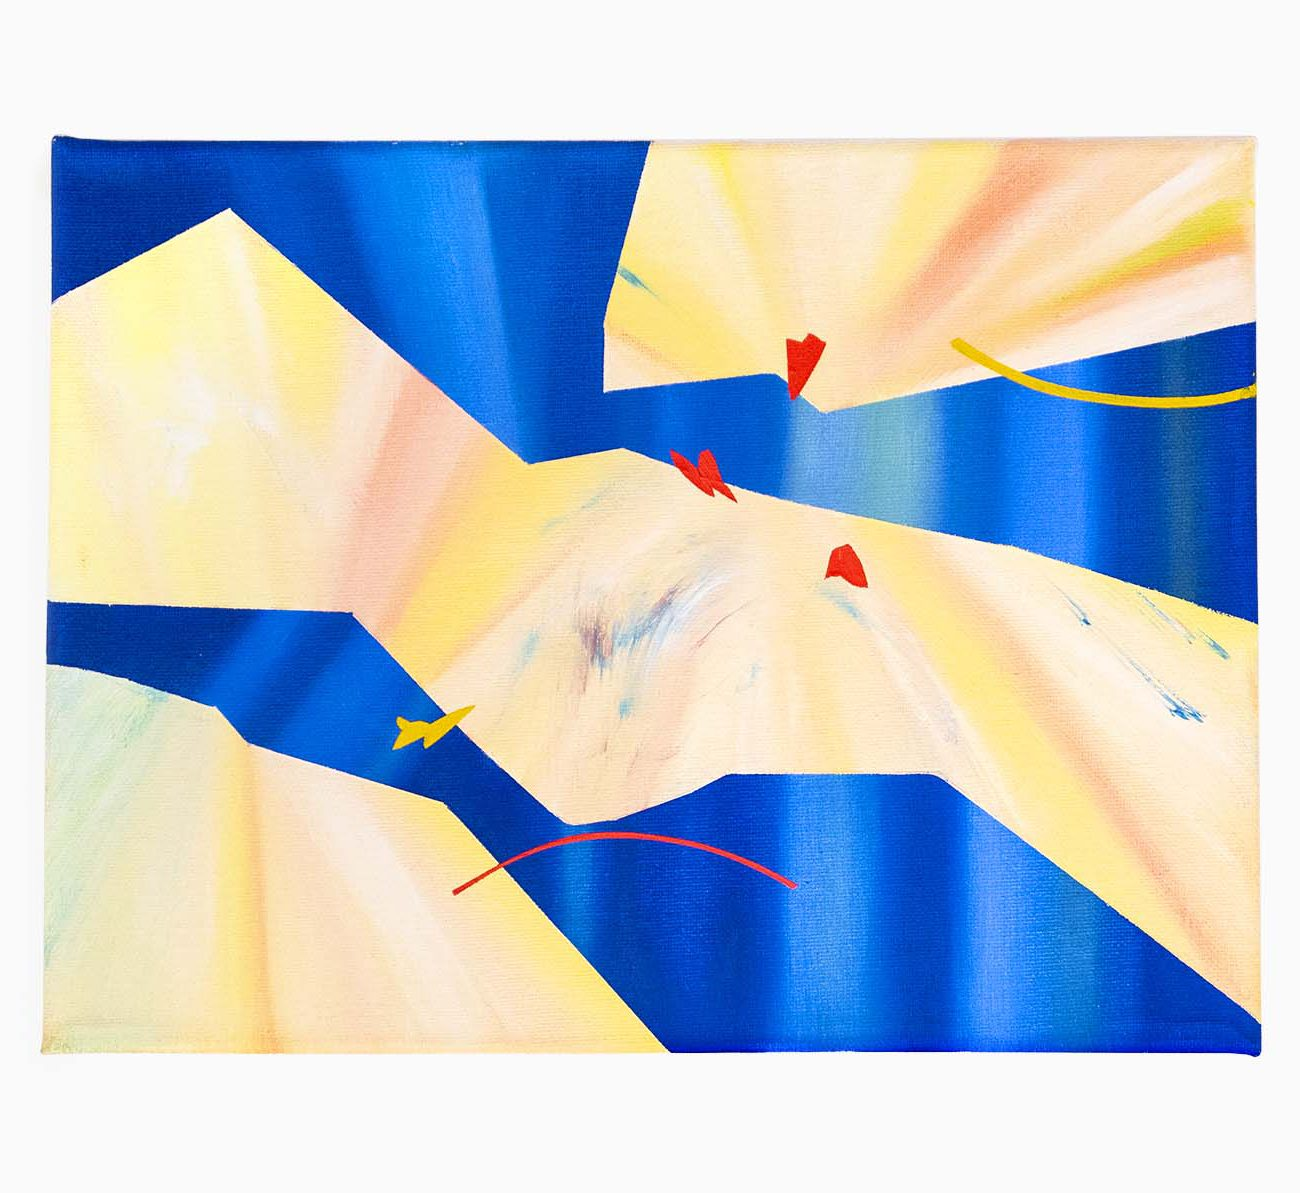 Warp 12 (W) x 9 (H) Inches Oil on Canvas 2020 by 권재나 Jaena Kwon